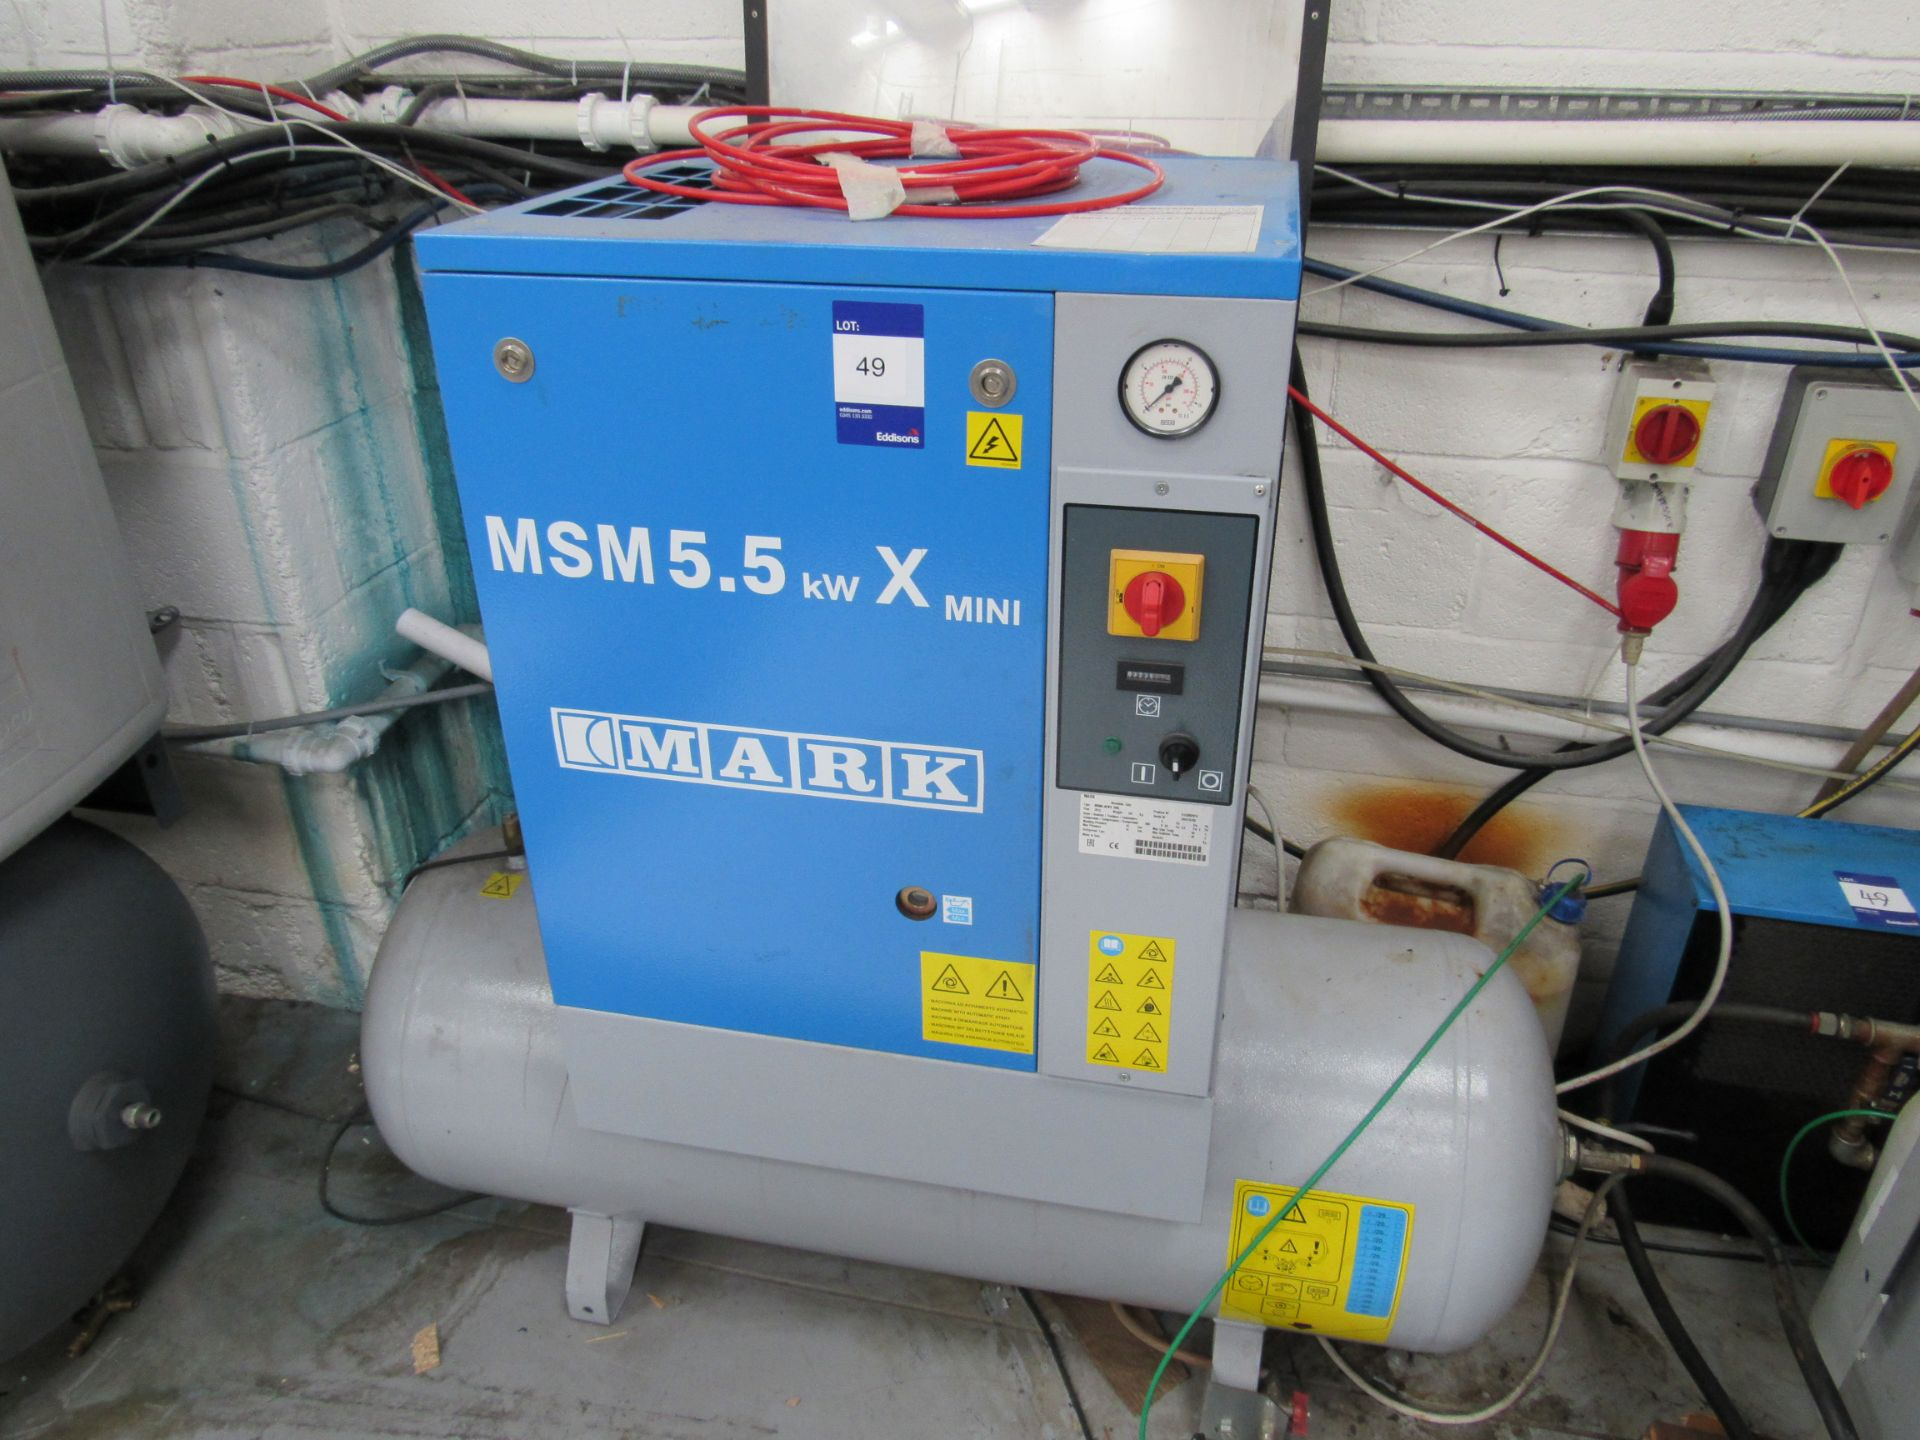 Mark MSM5, 5KWX, 200L Receiver Mounted Compressor with Air Drier Serial Number CA1870780